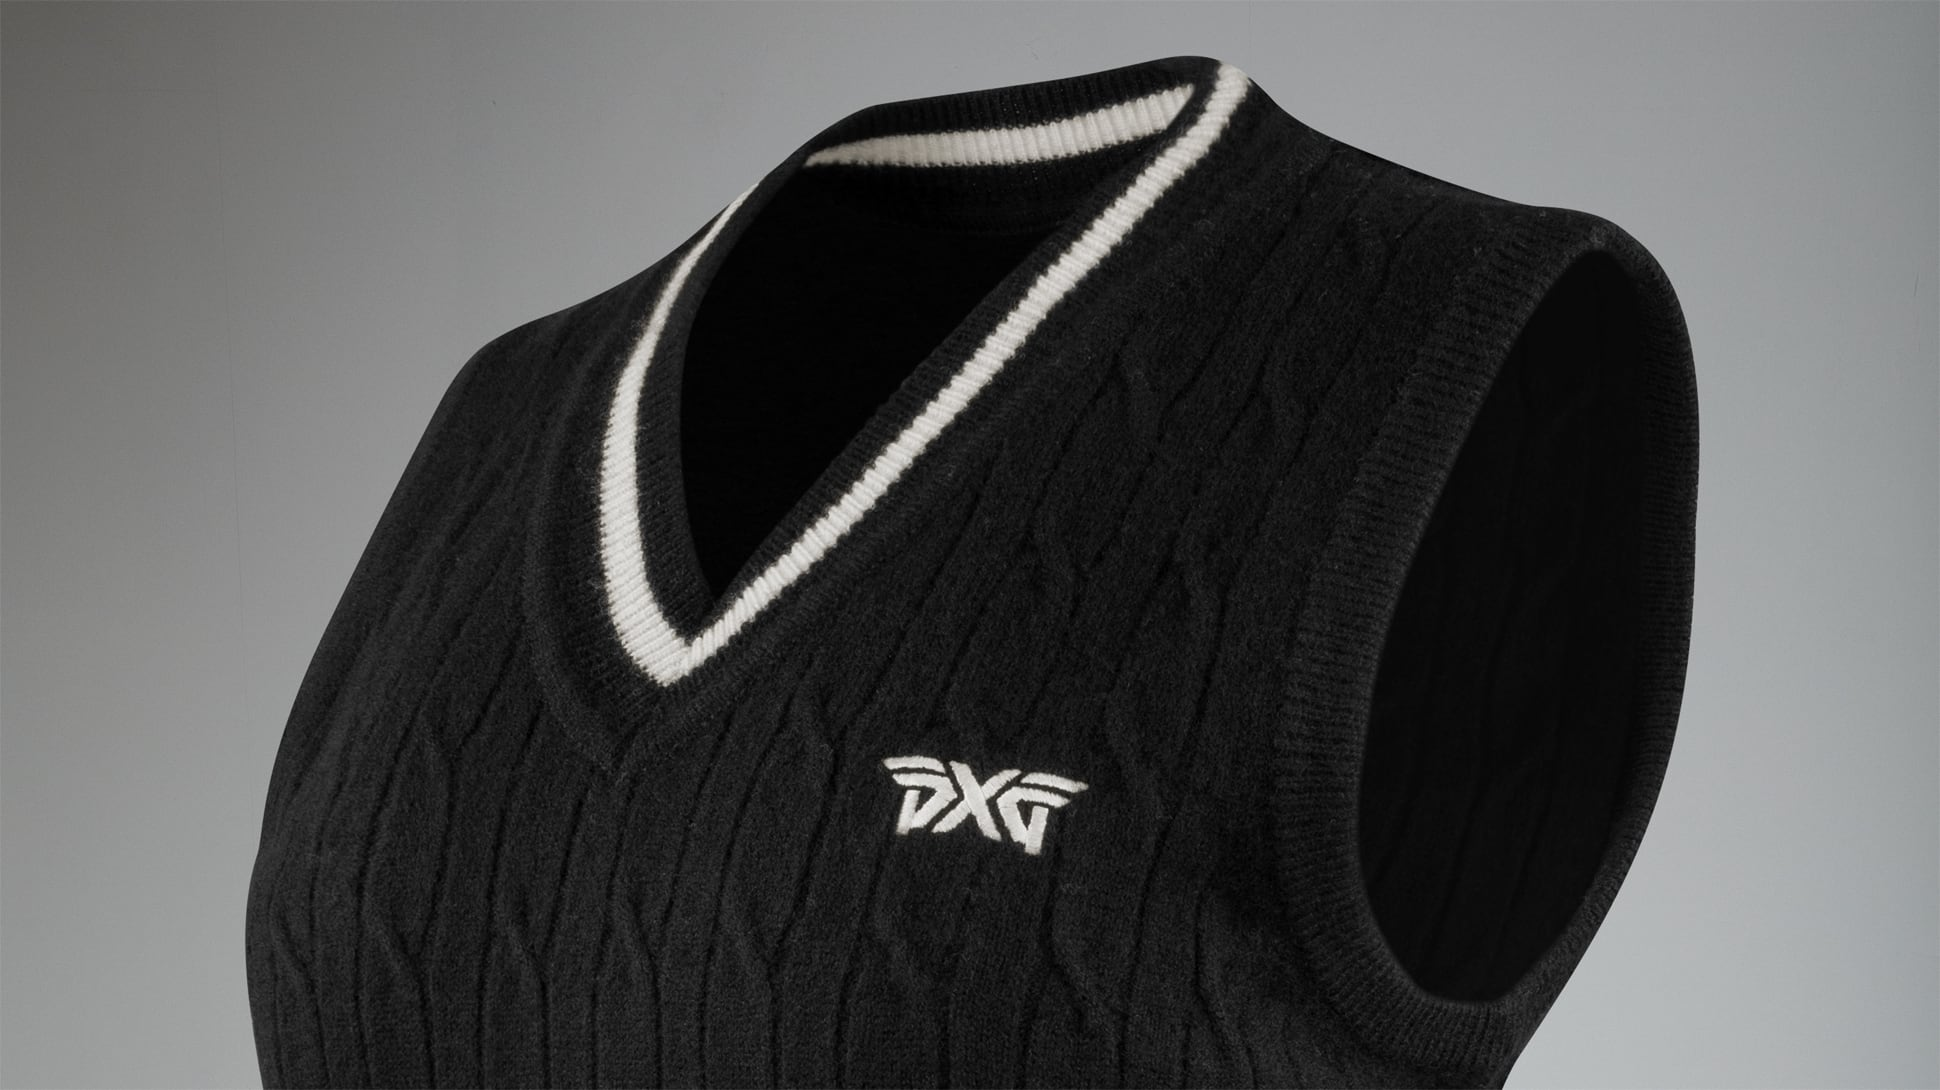 Cable Knit Wool Vest Image 2